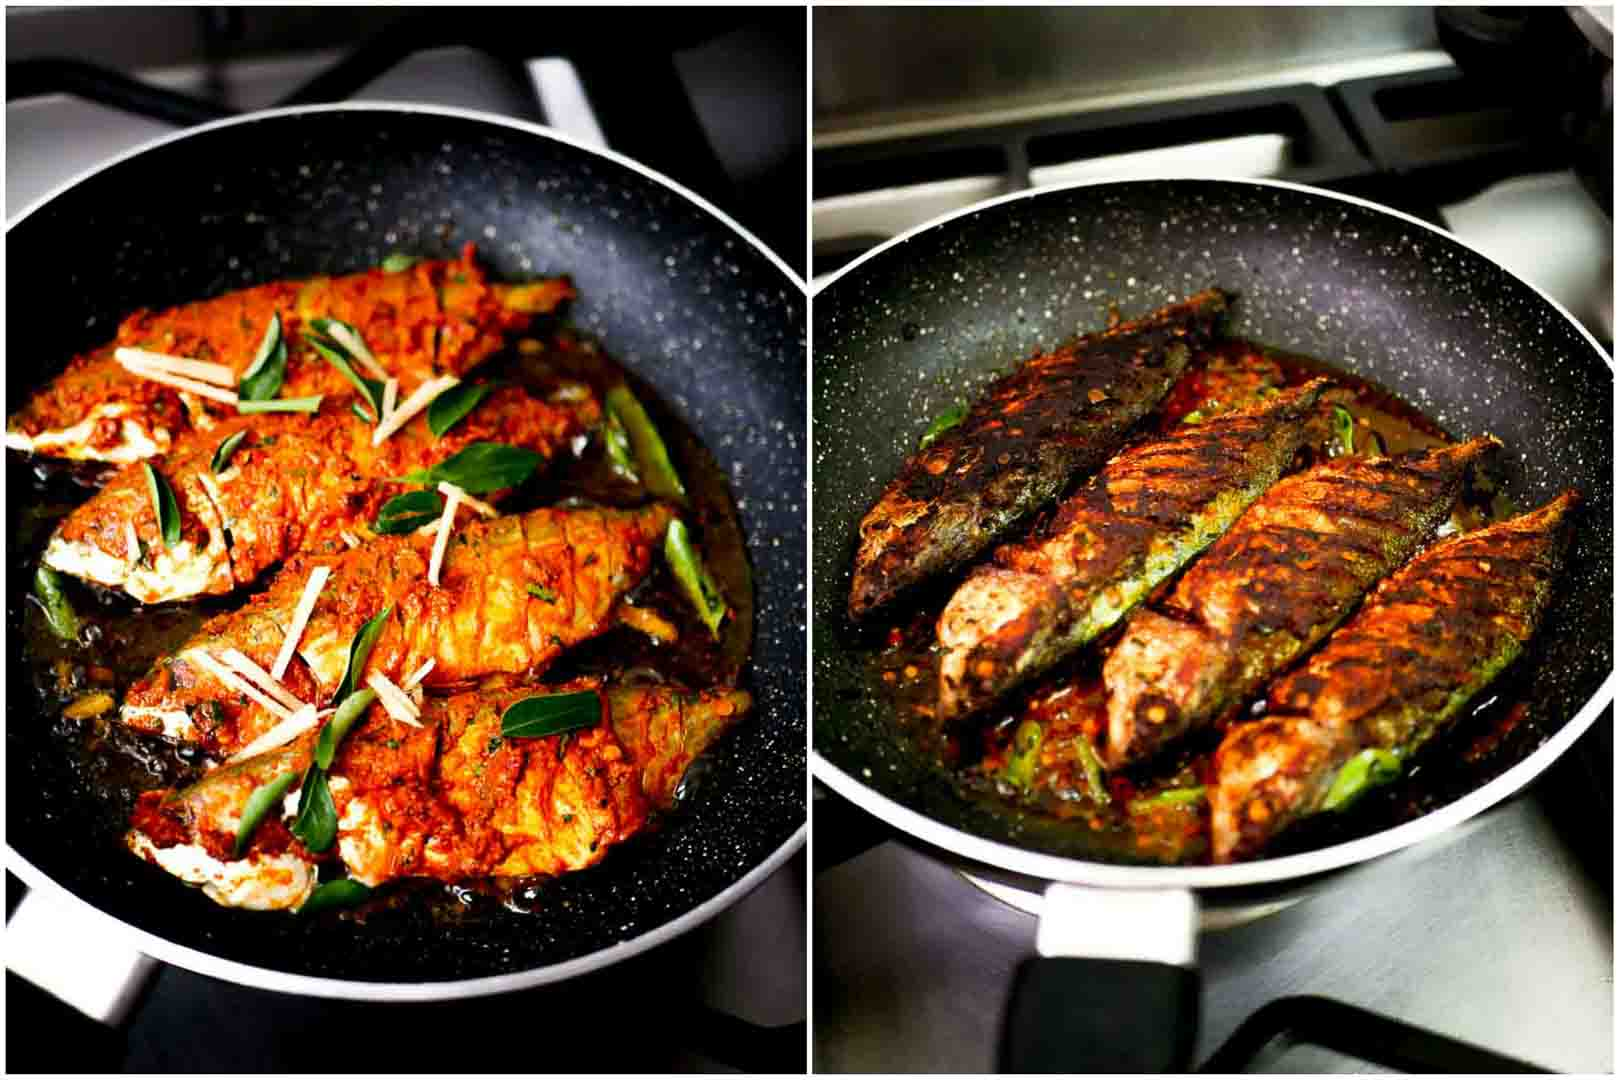 masala-fish-fry-recipe-ayala-meen-Mackerel-fry (10)